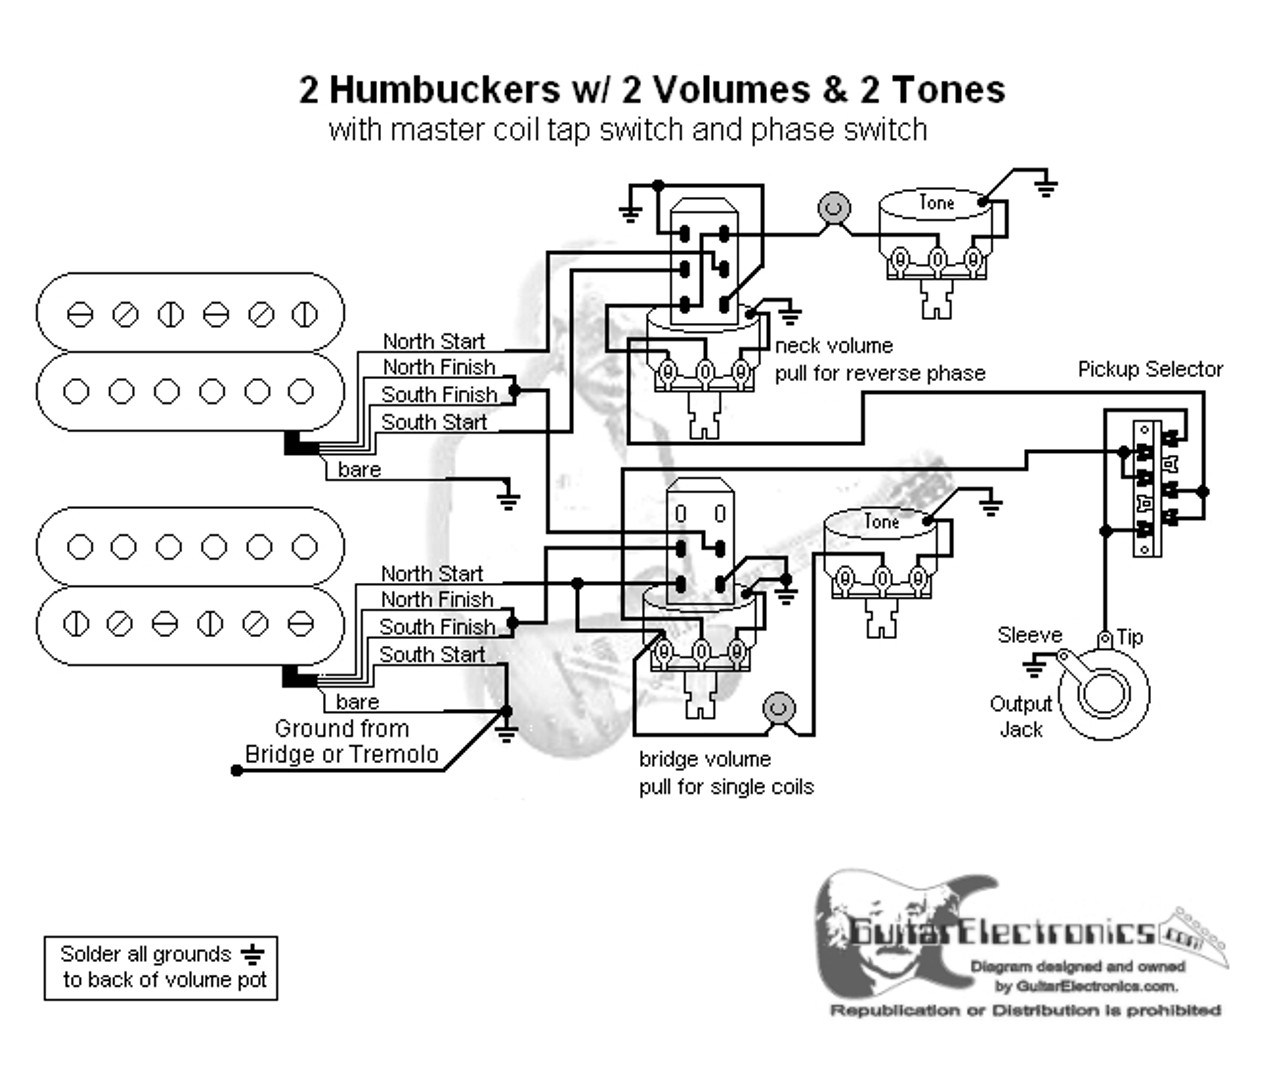 2 hbs 3 way lever 2 vol 2 tones coil tap \u0026 reverse phaseHumbuckers 3way Toggle Switch 1 Volume 1 Tone Coil Tap Reverse #8